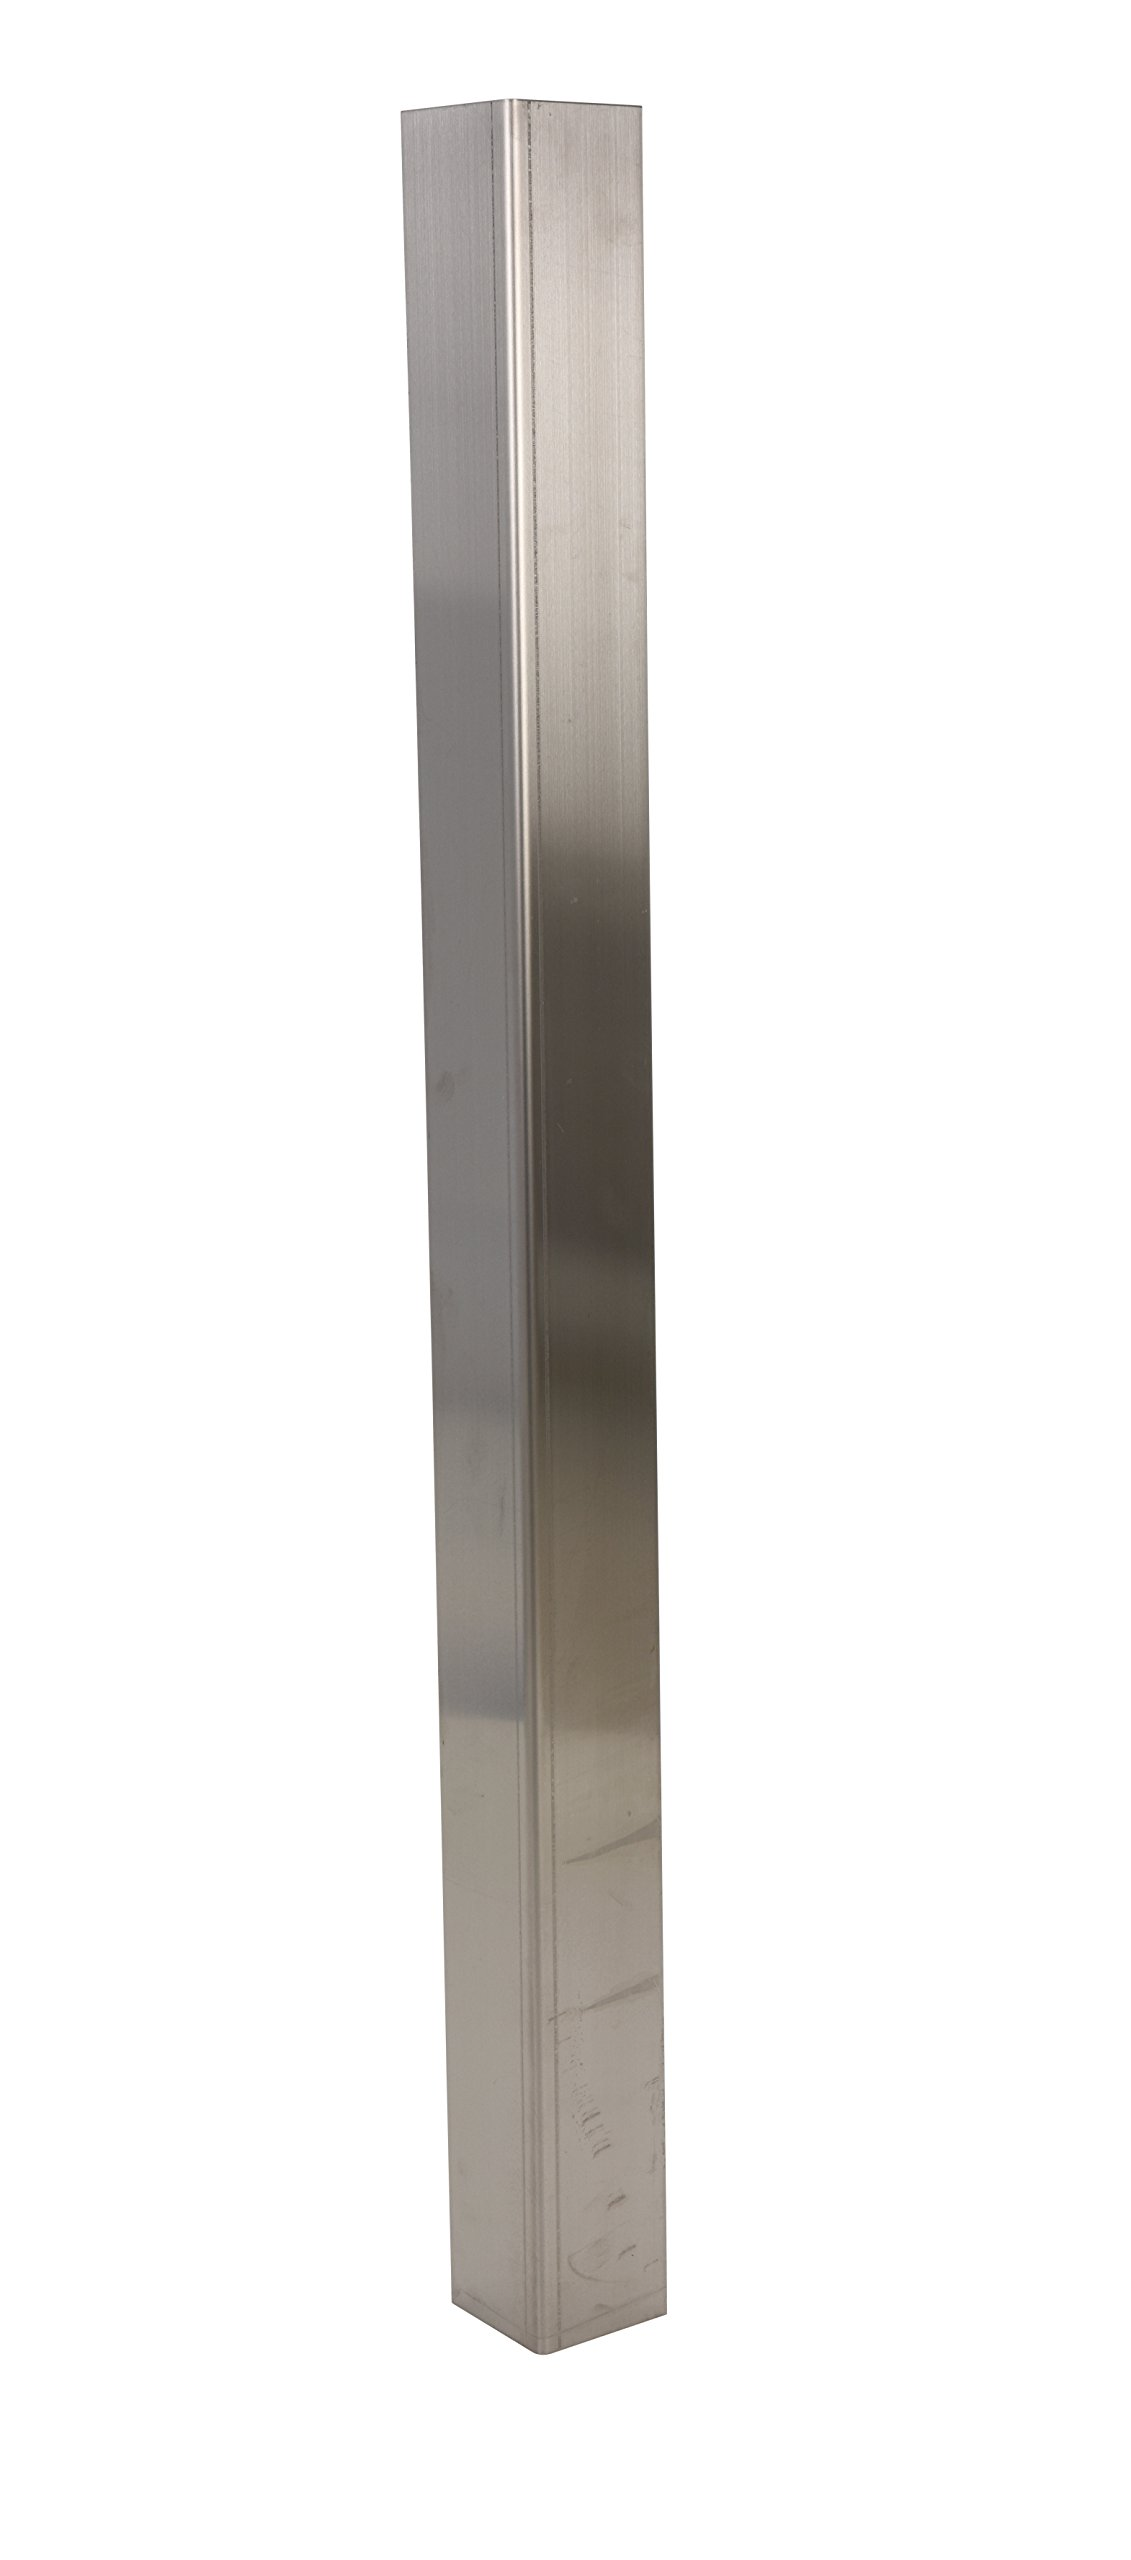 Vestil SS-48 304 Stainless Steel Square Angle Corner Guard, 48'' Height x 1/16'' Thick